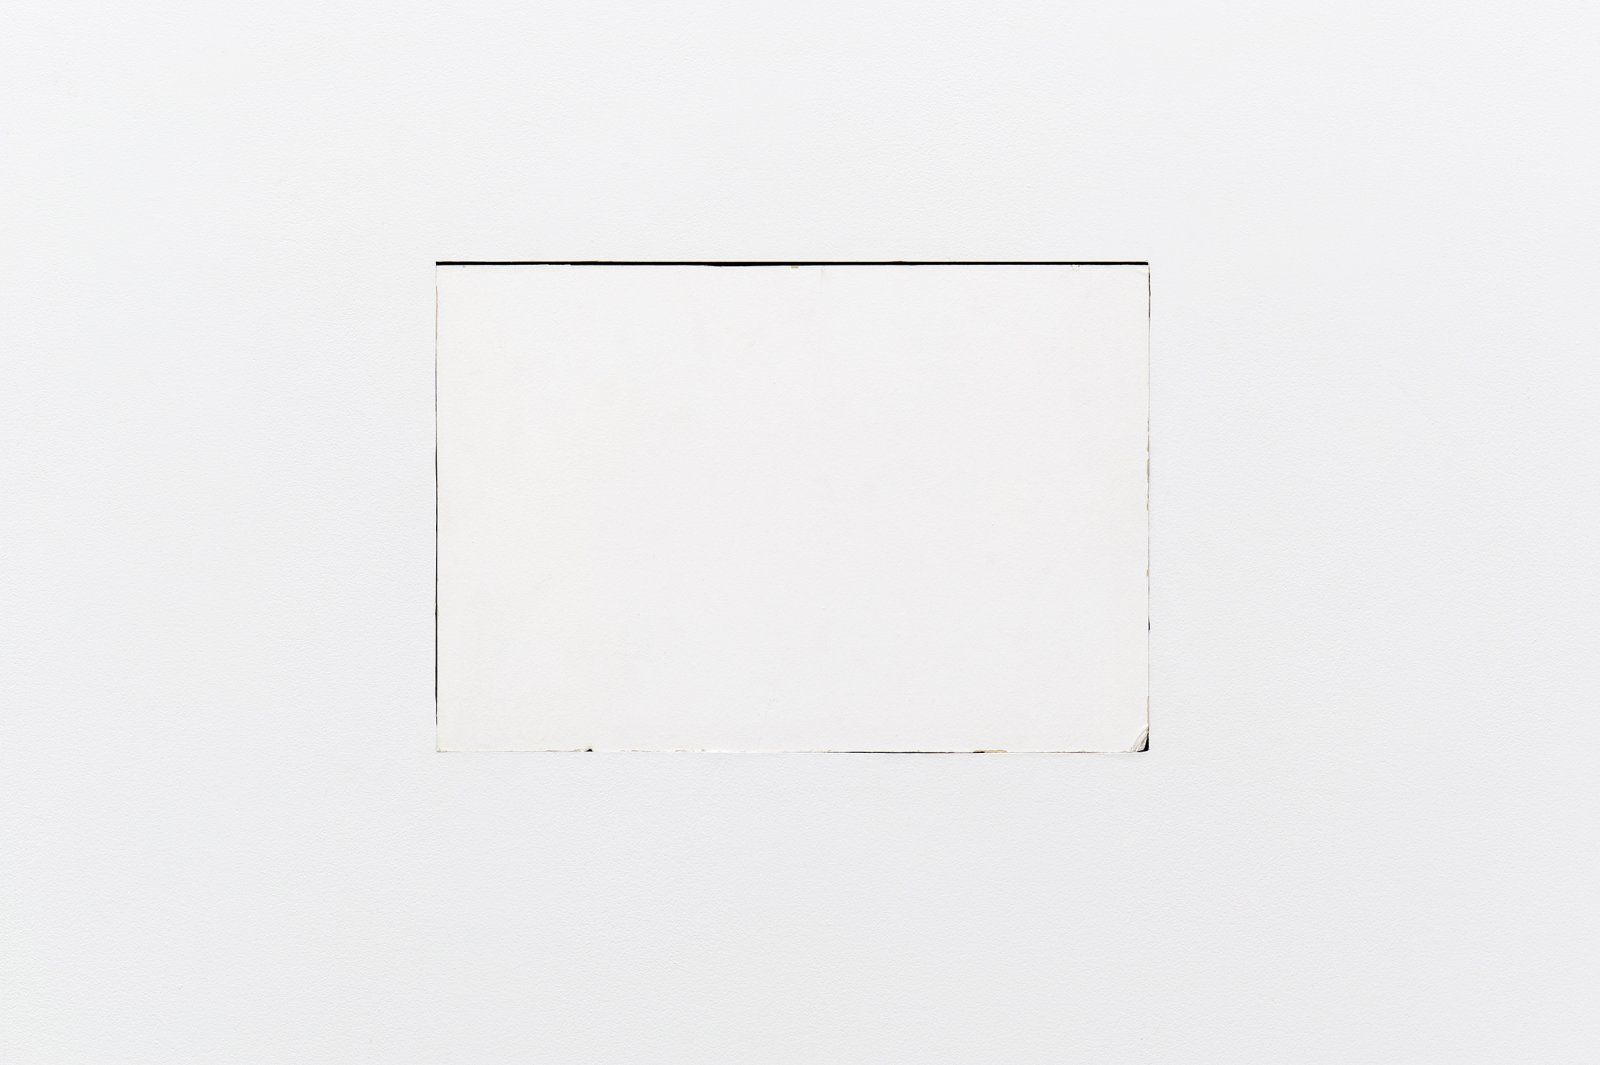 Arabella Campbell, Study for object that appears, 2009, drywall removed from artist's studio, 188 W 3rd Ave Vancouver and inserted into gallery wall, 14 x 21 in. (36 x 53 cm) by